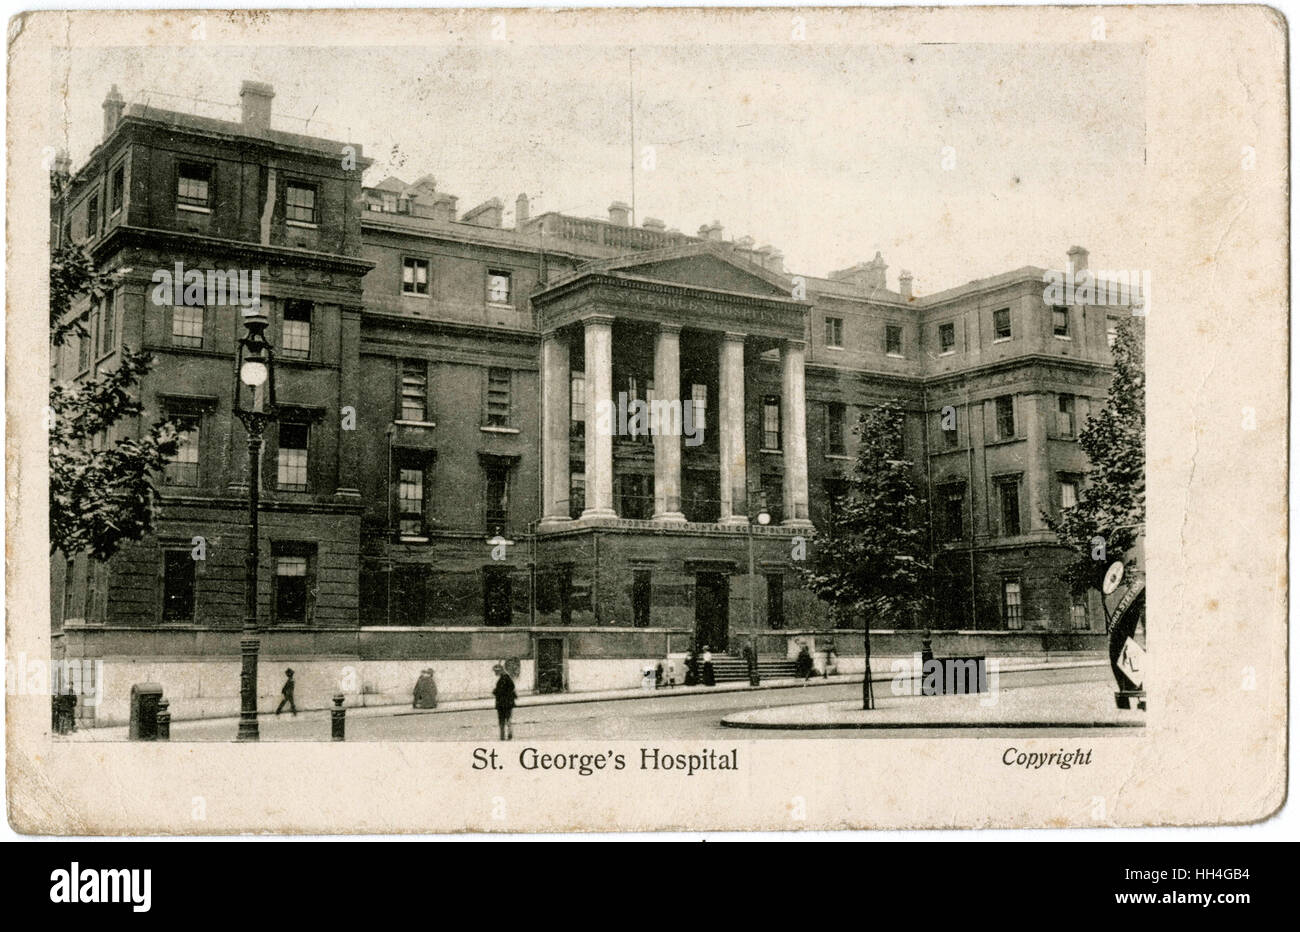 London - St. George's Hospital (now 'The Lanesborough' hotel), Hyde Park Corner. - Stock Image